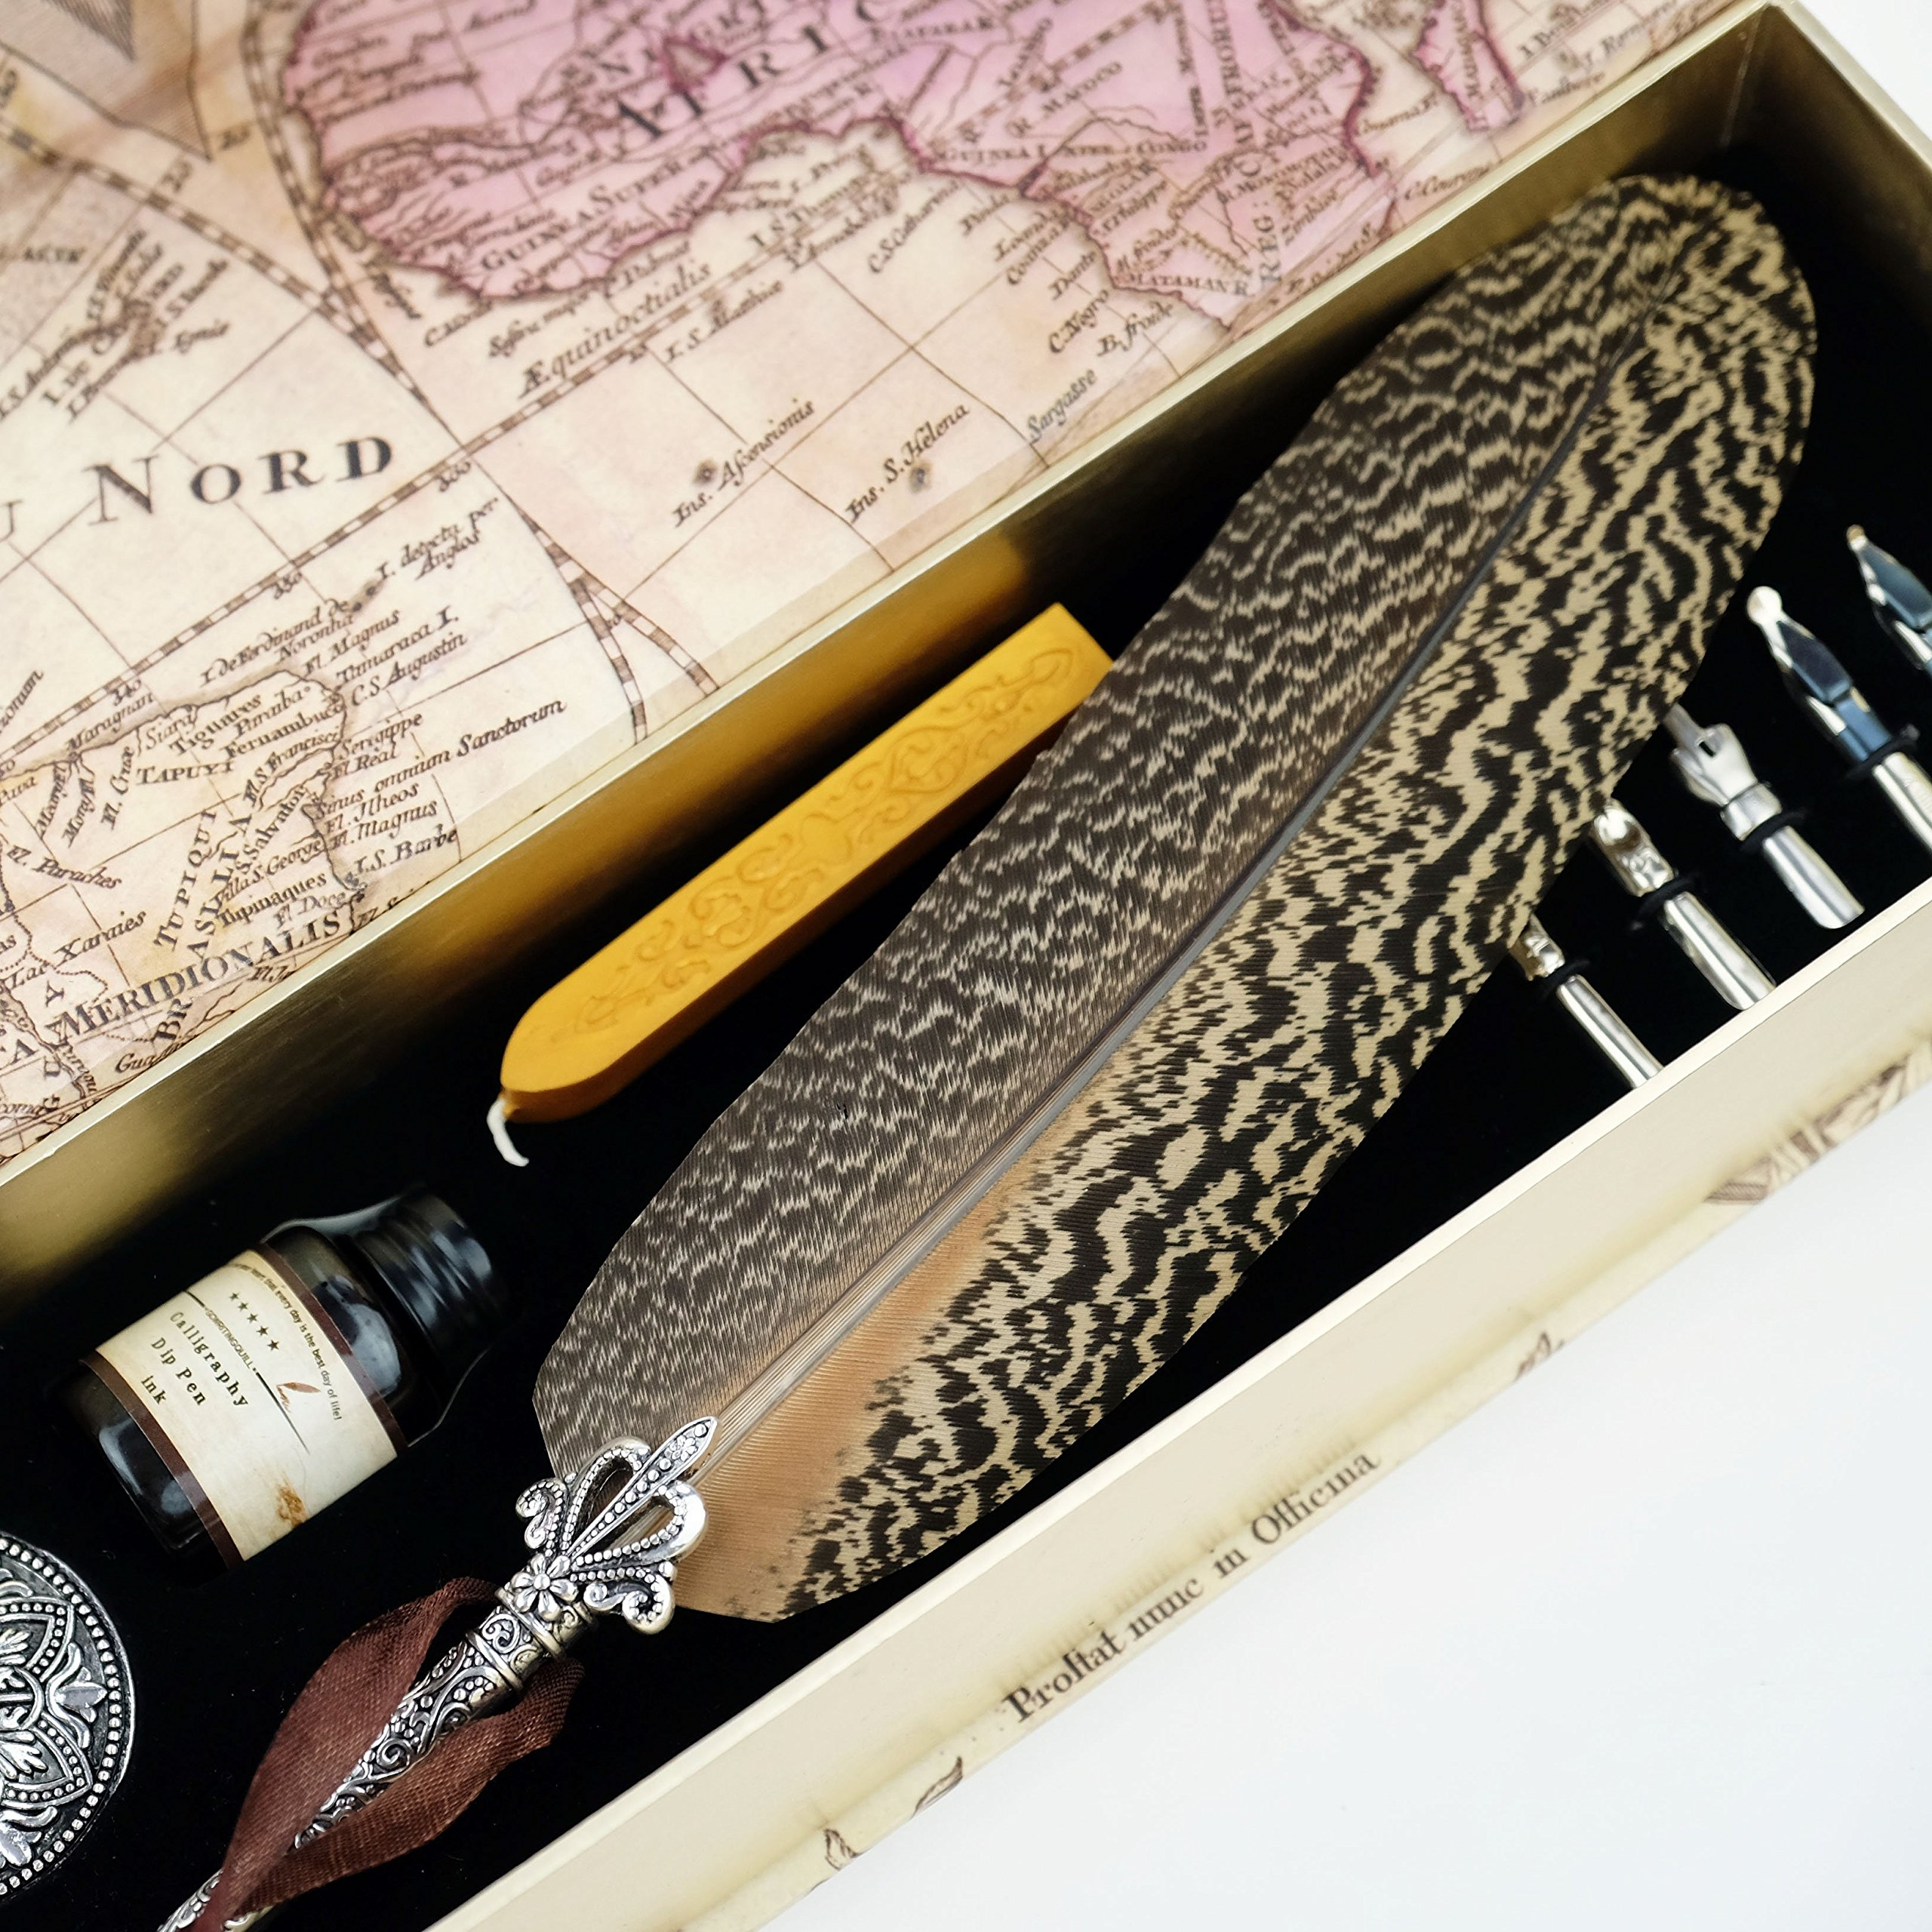 GC Quill Pen Beautiful Nuture Feather Metal Carving Pen Holder 6 Nibs Gift Set GCLL021 by GC Writing Quill (Image #4)